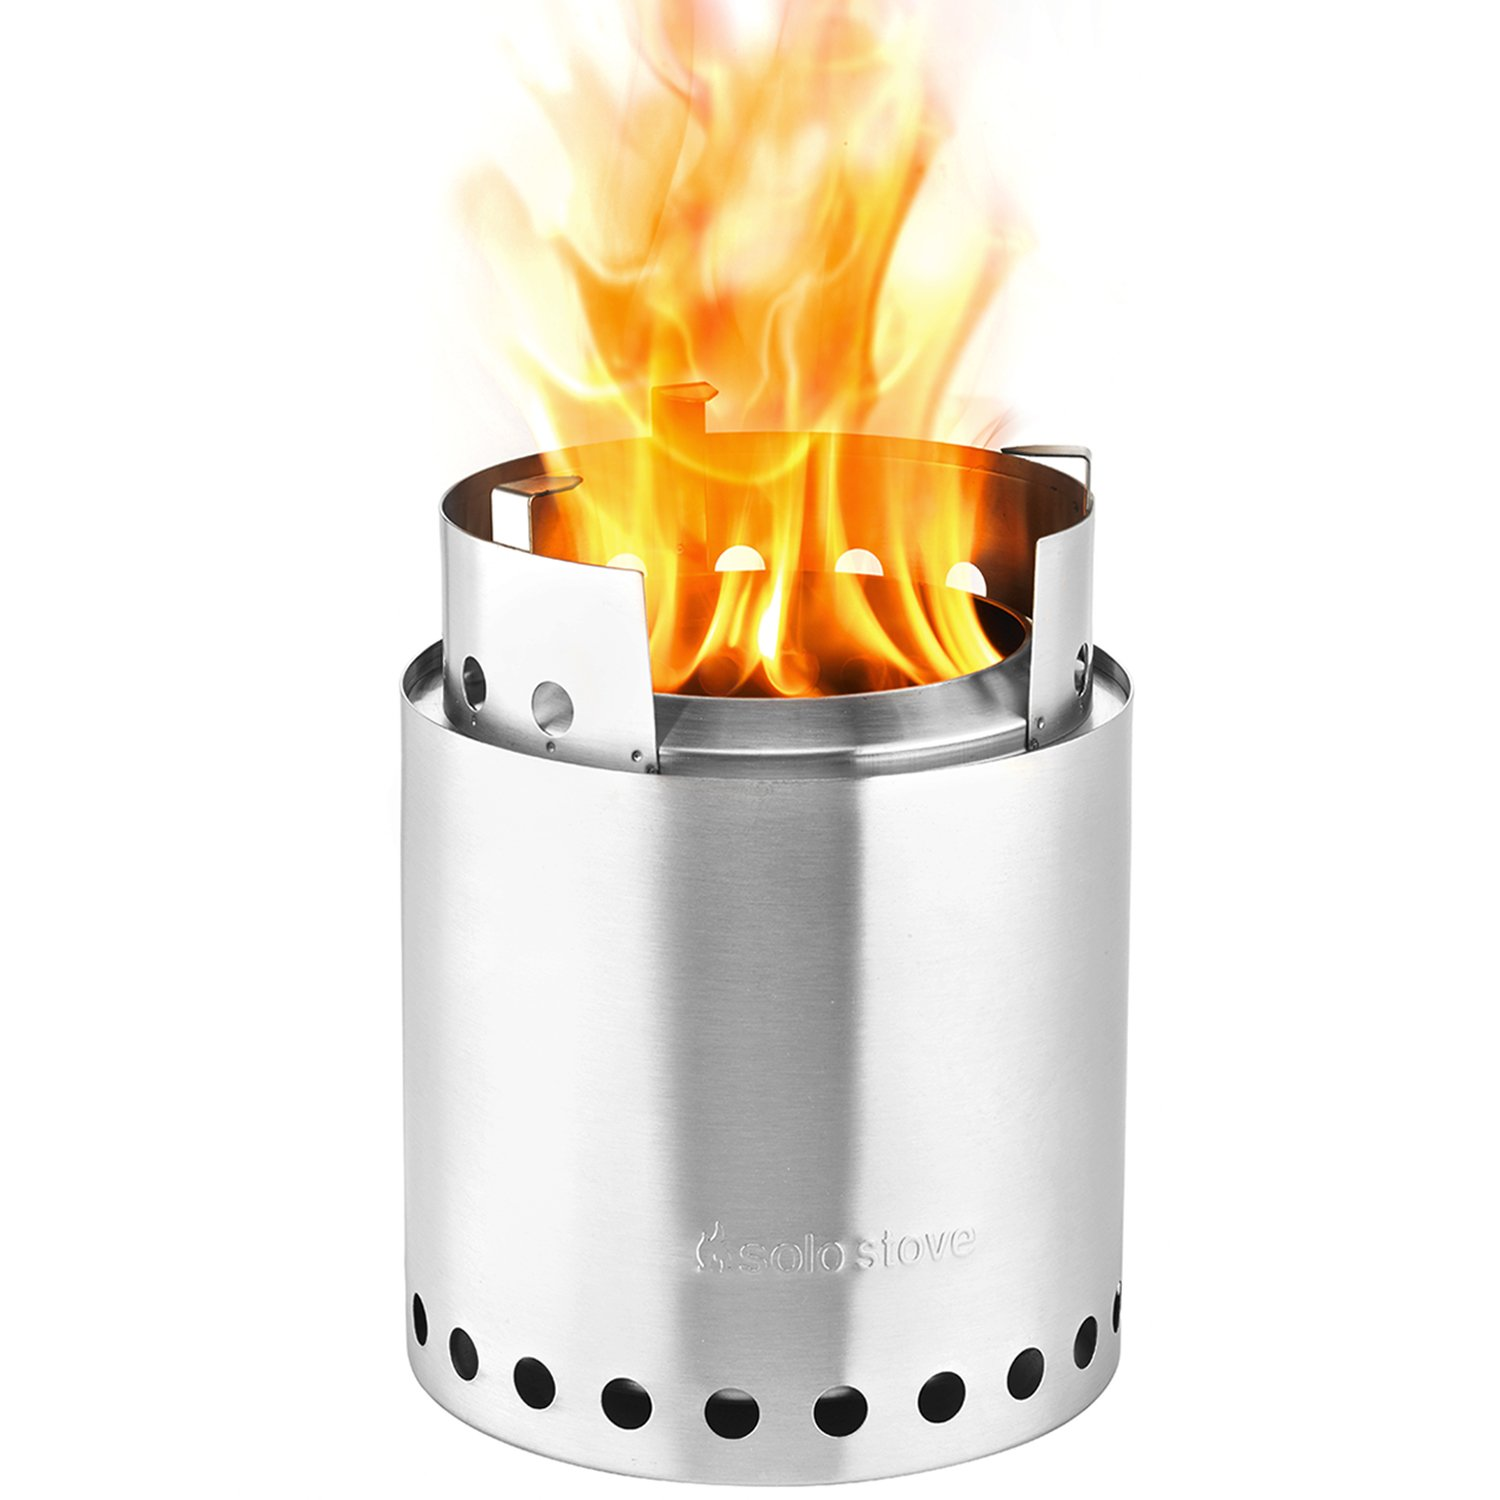 Solo Stove Campfire - 4+ Person Compact Wood Burning Camp Stove for Backpacking, Camping, Survival. Burns Twigs - NO Batteries or Liquid Fuel Gas Canister Required. by Solo Stove (Image #1)